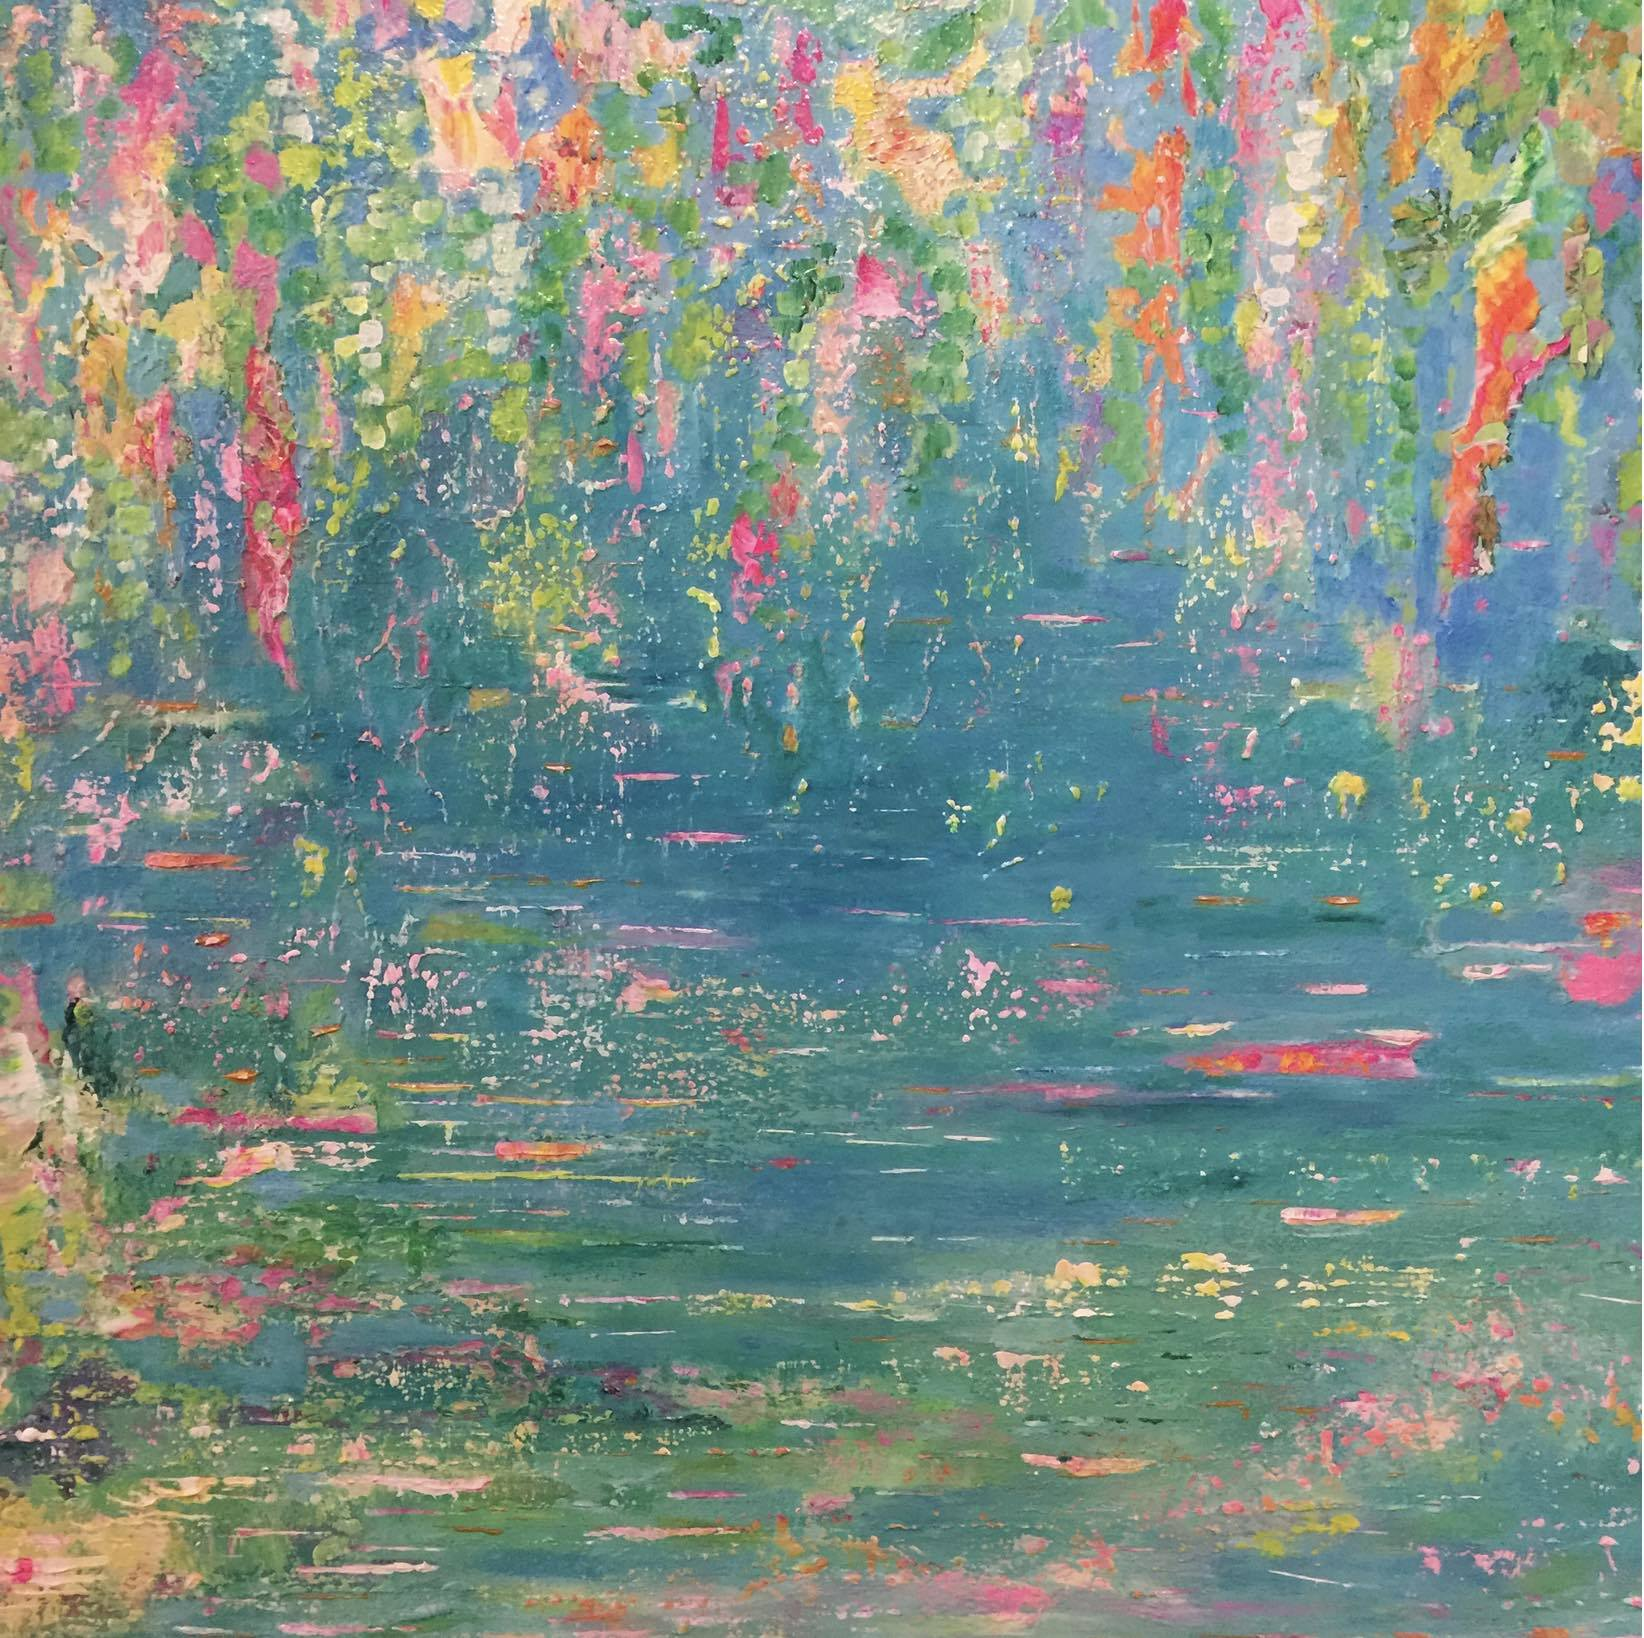 <span class=&#34;link fancybox-details-link&#34;><a href=&#34;/artists/38-linda-franklin/works/2648-linda-franklin-spring-blossom/&#34;>View Detail Page</a></span><div class=&#34;artist&#34;><strong>Linda Franklin</strong></div> <div class=&#34;title&#34;><em>Spring Blossom</em></div> <div class=&#34;medium&#34;>Mixed Media on Canvas</div> <div class=&#34;dimensions&#34;>90 x 90 cm </div><div class=&#34;price&#34;>£1,950.00</div><div class=&#34;copyright_line&#34;>Copyright The Artist</div>